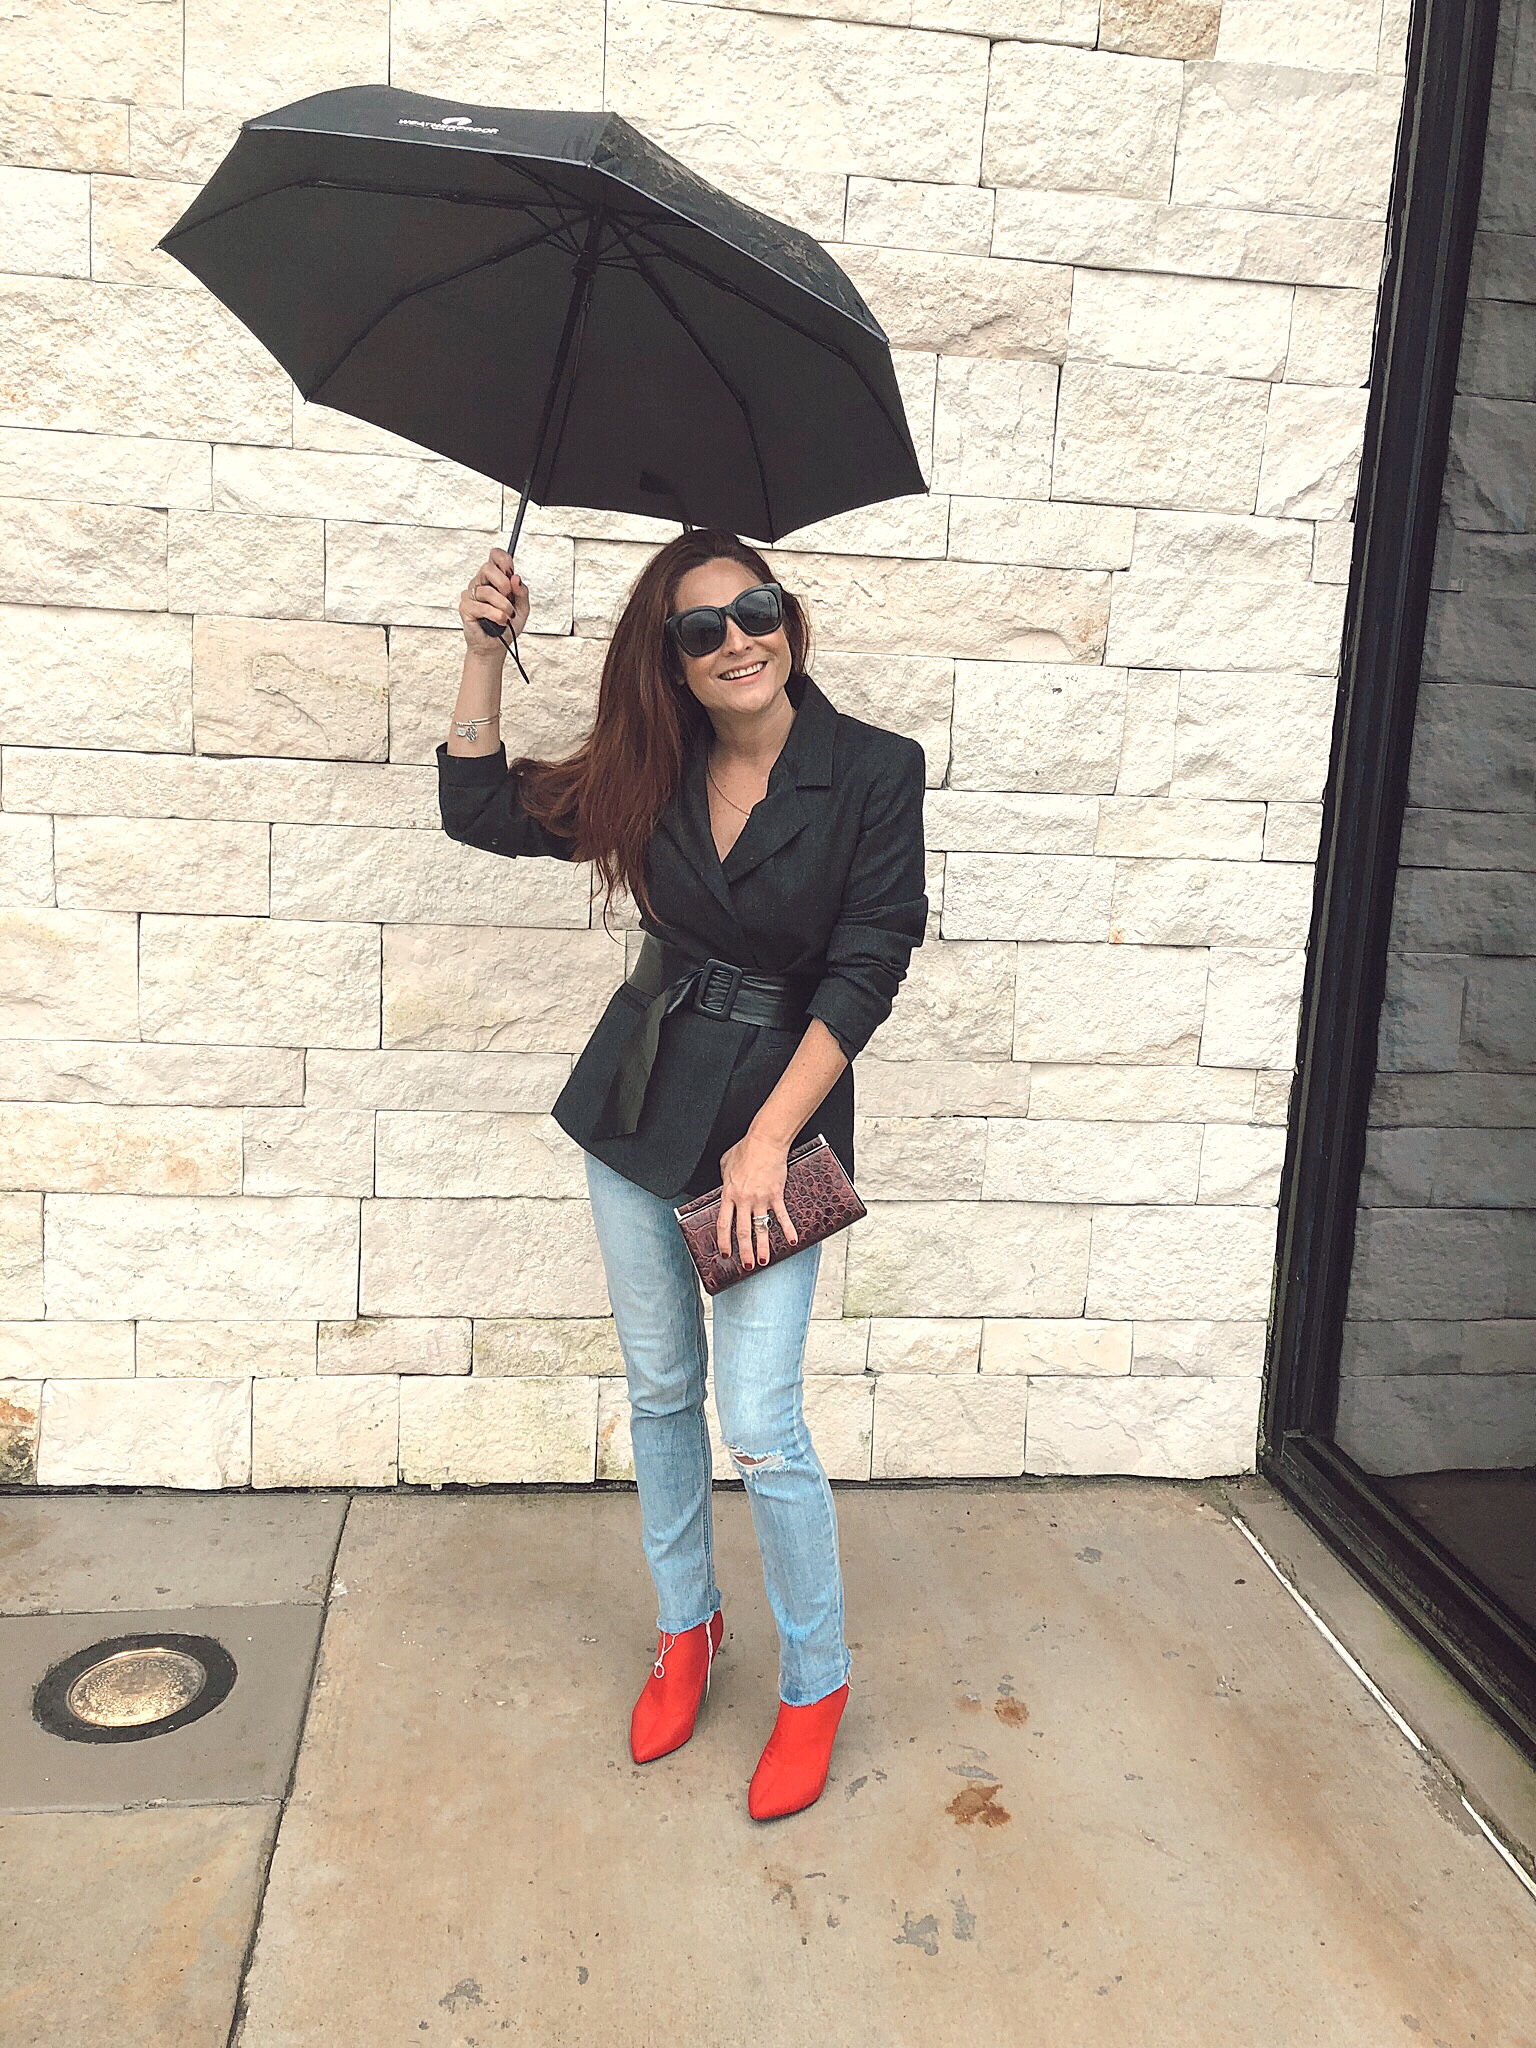 how to style a belt over a jacket, red boot outfits, maroon clutches